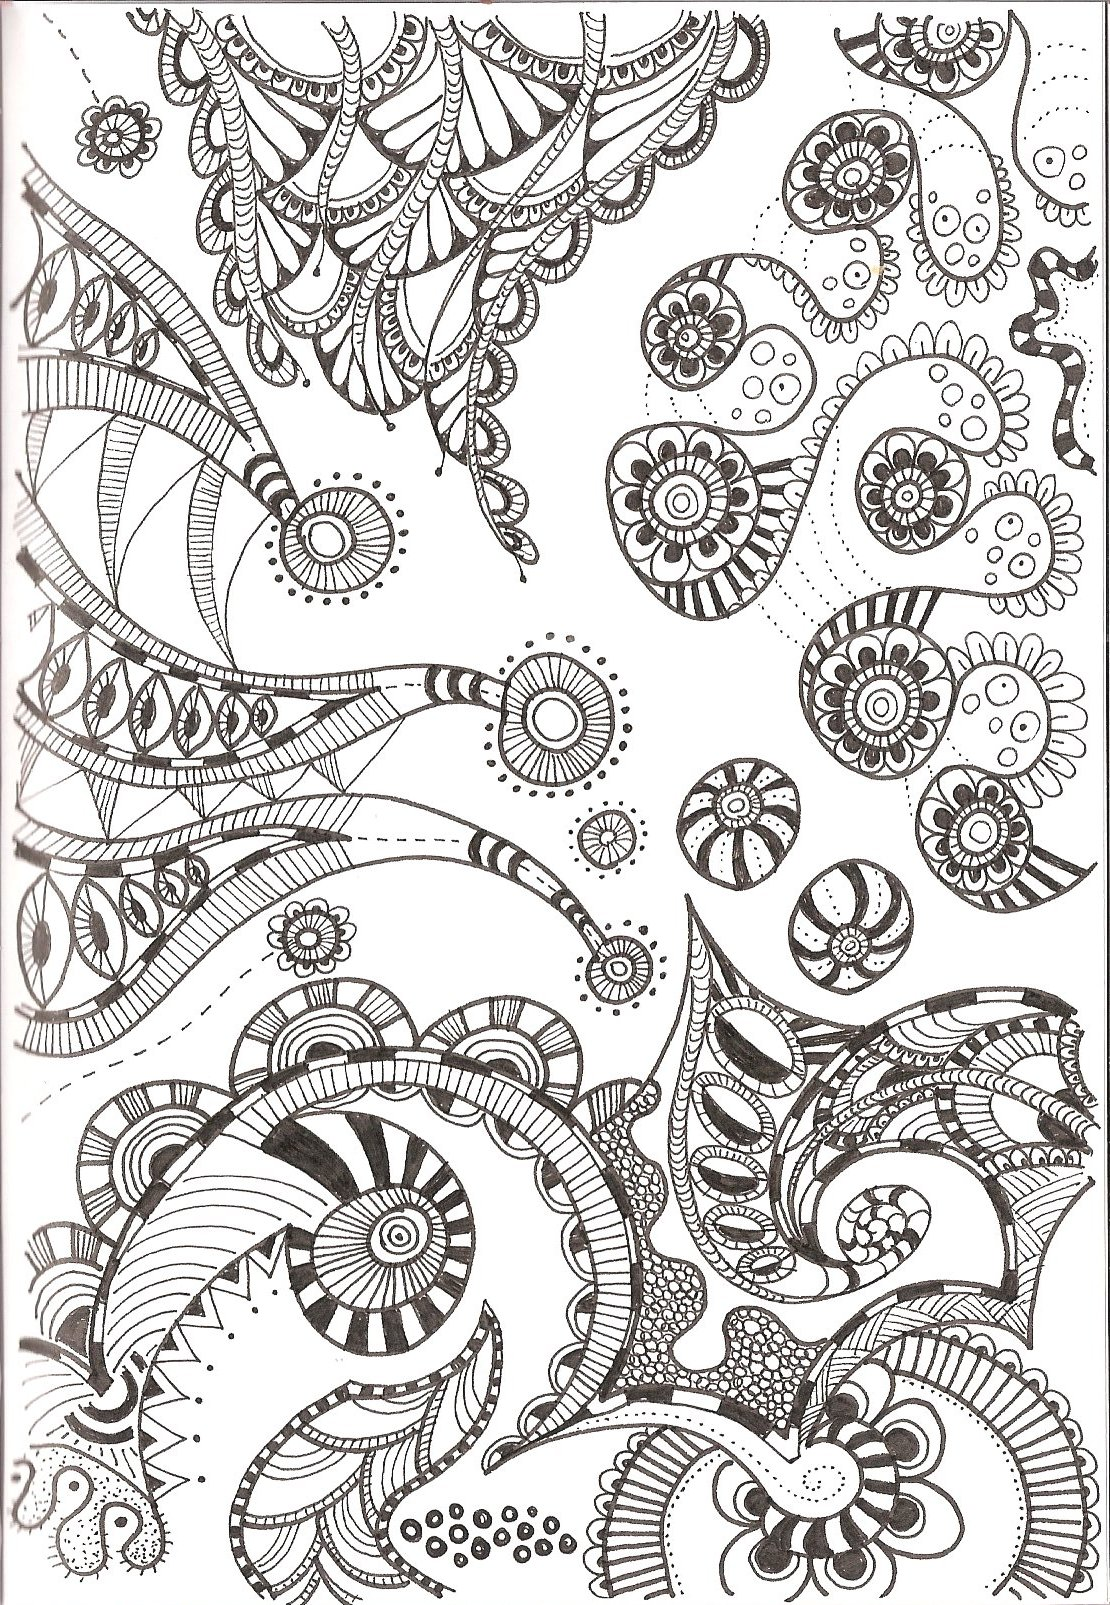 Disney zentangle coloring pages - Free Printable Zentangle Coloring Patterns